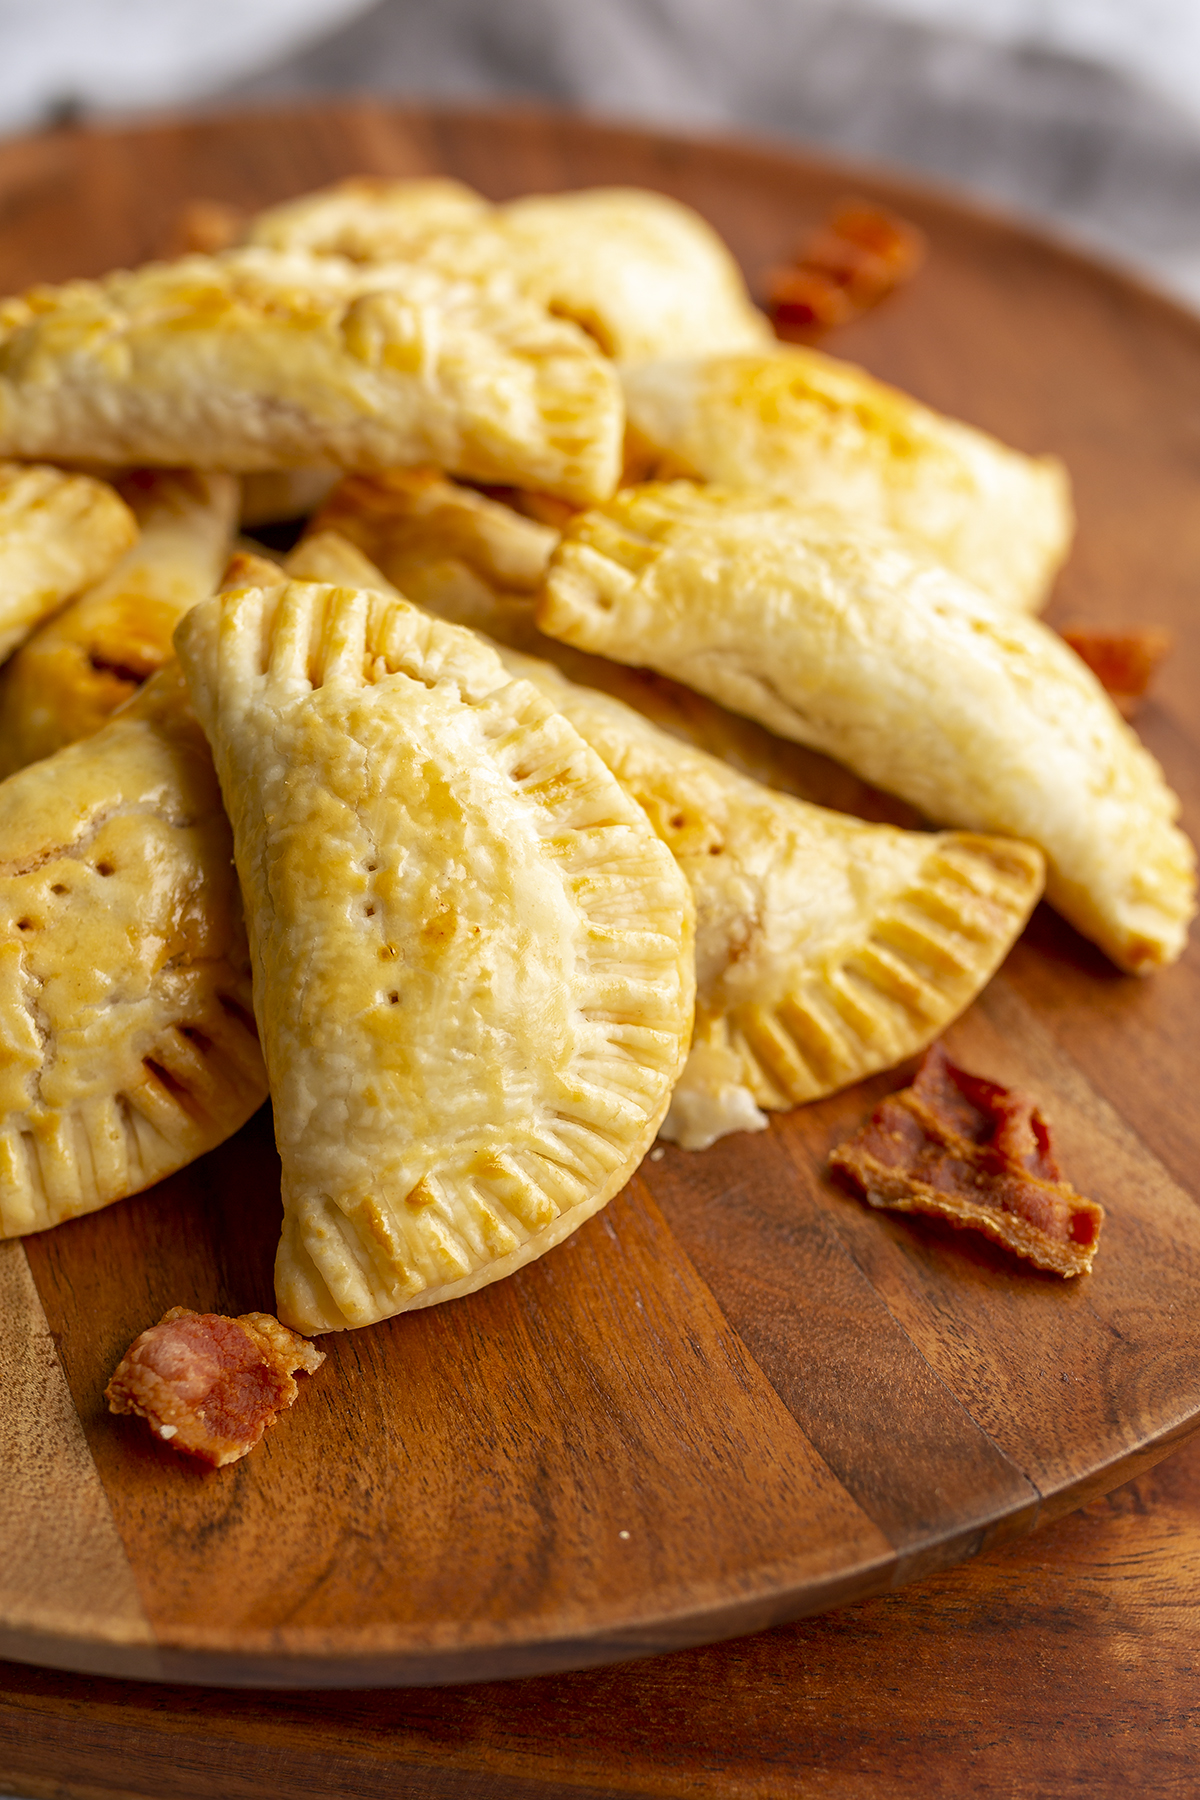 The best sausage hand pies ever.